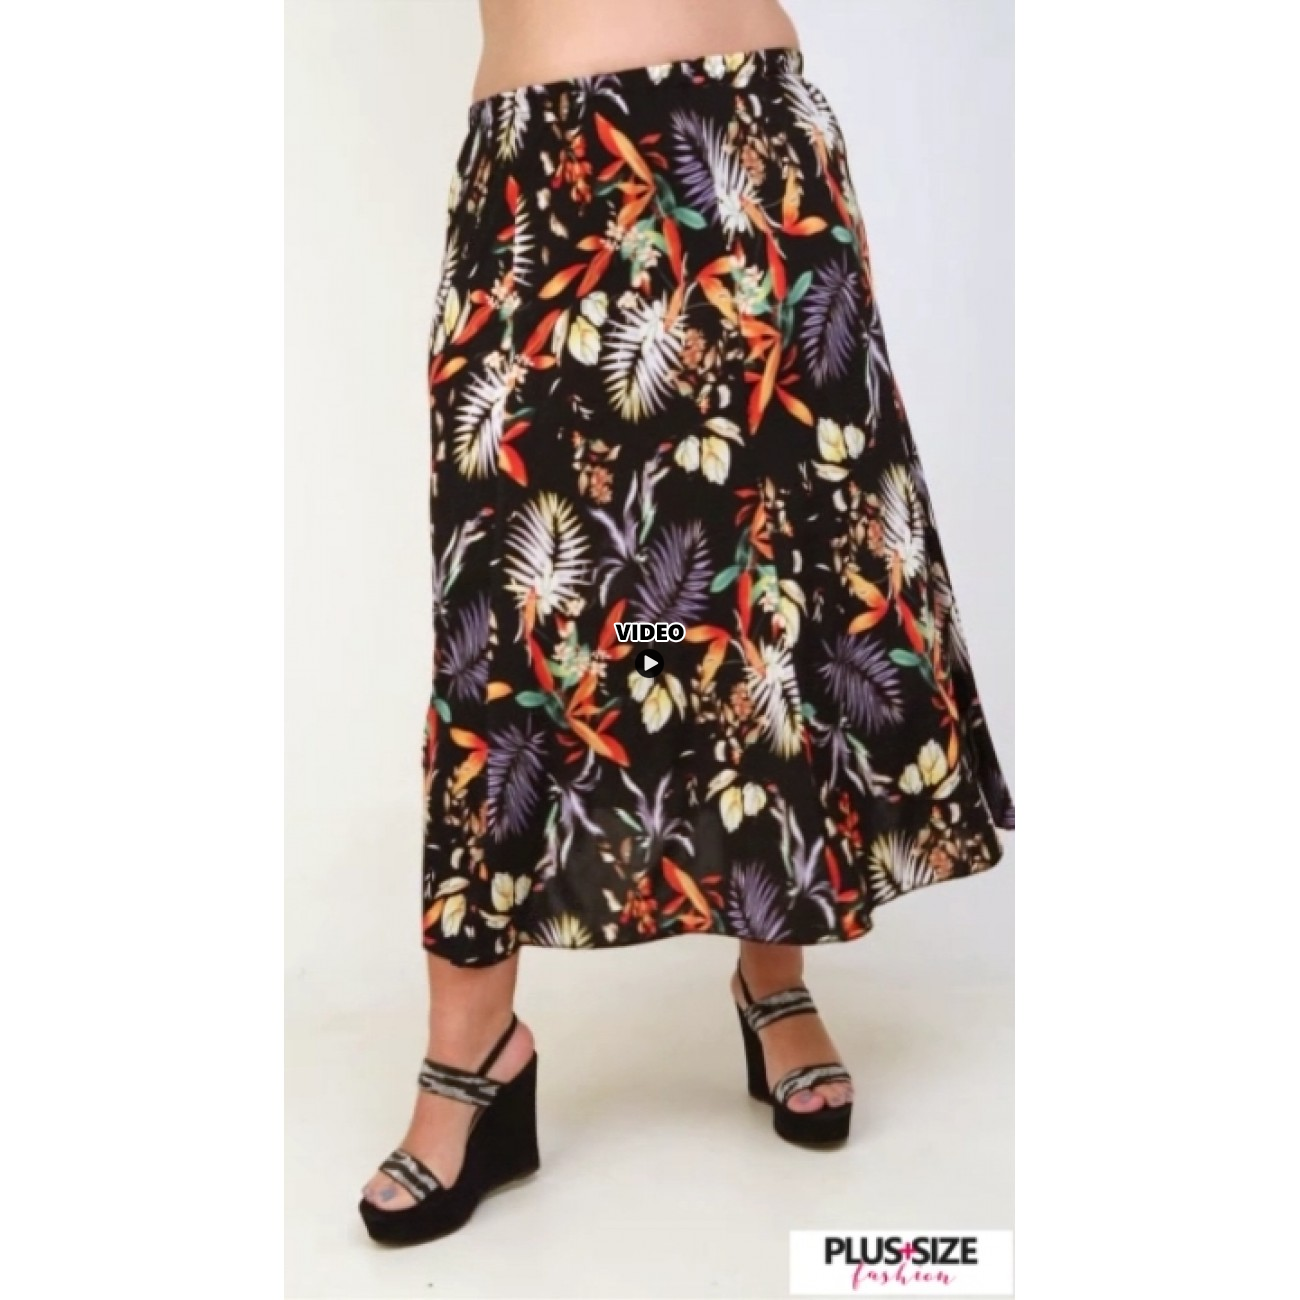 A21-7760 Jersey Closh Skirt with elastic band